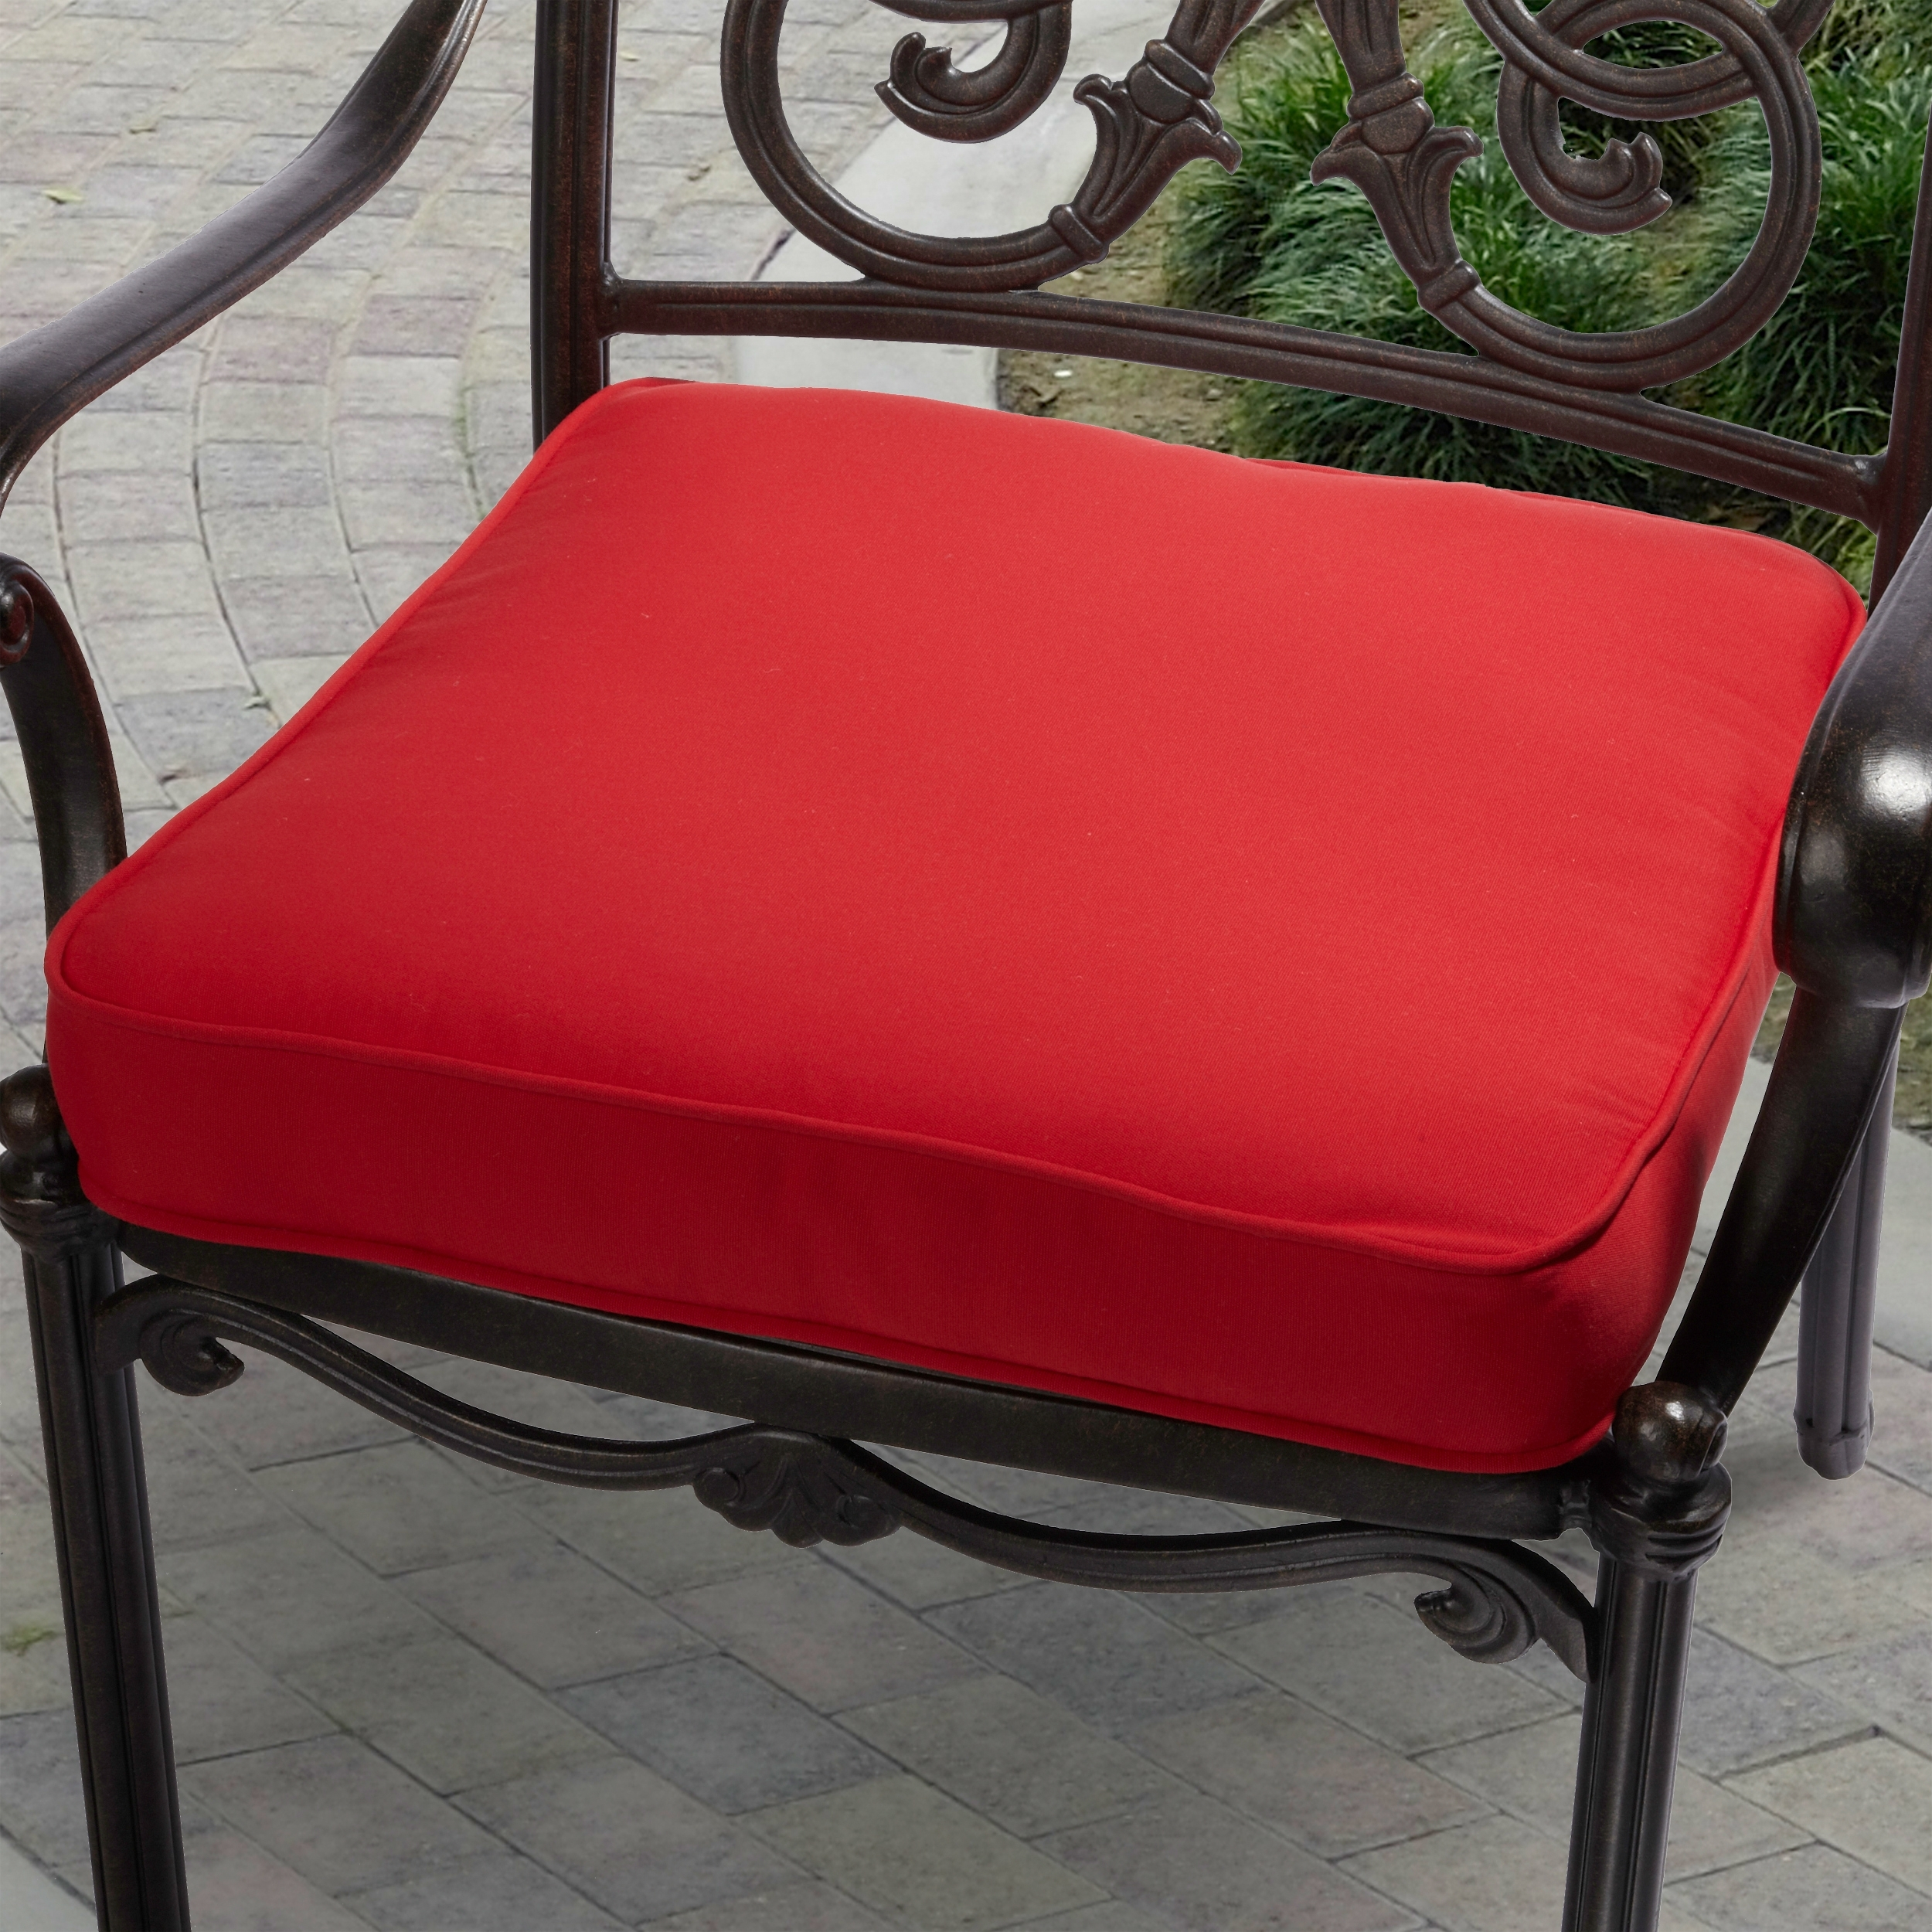 Dining Room Remarkable Garden Exterior Decor With Comfortable For Red Outdoor Seat Cushions Red Outdoor Seat Cushions Set For Patio